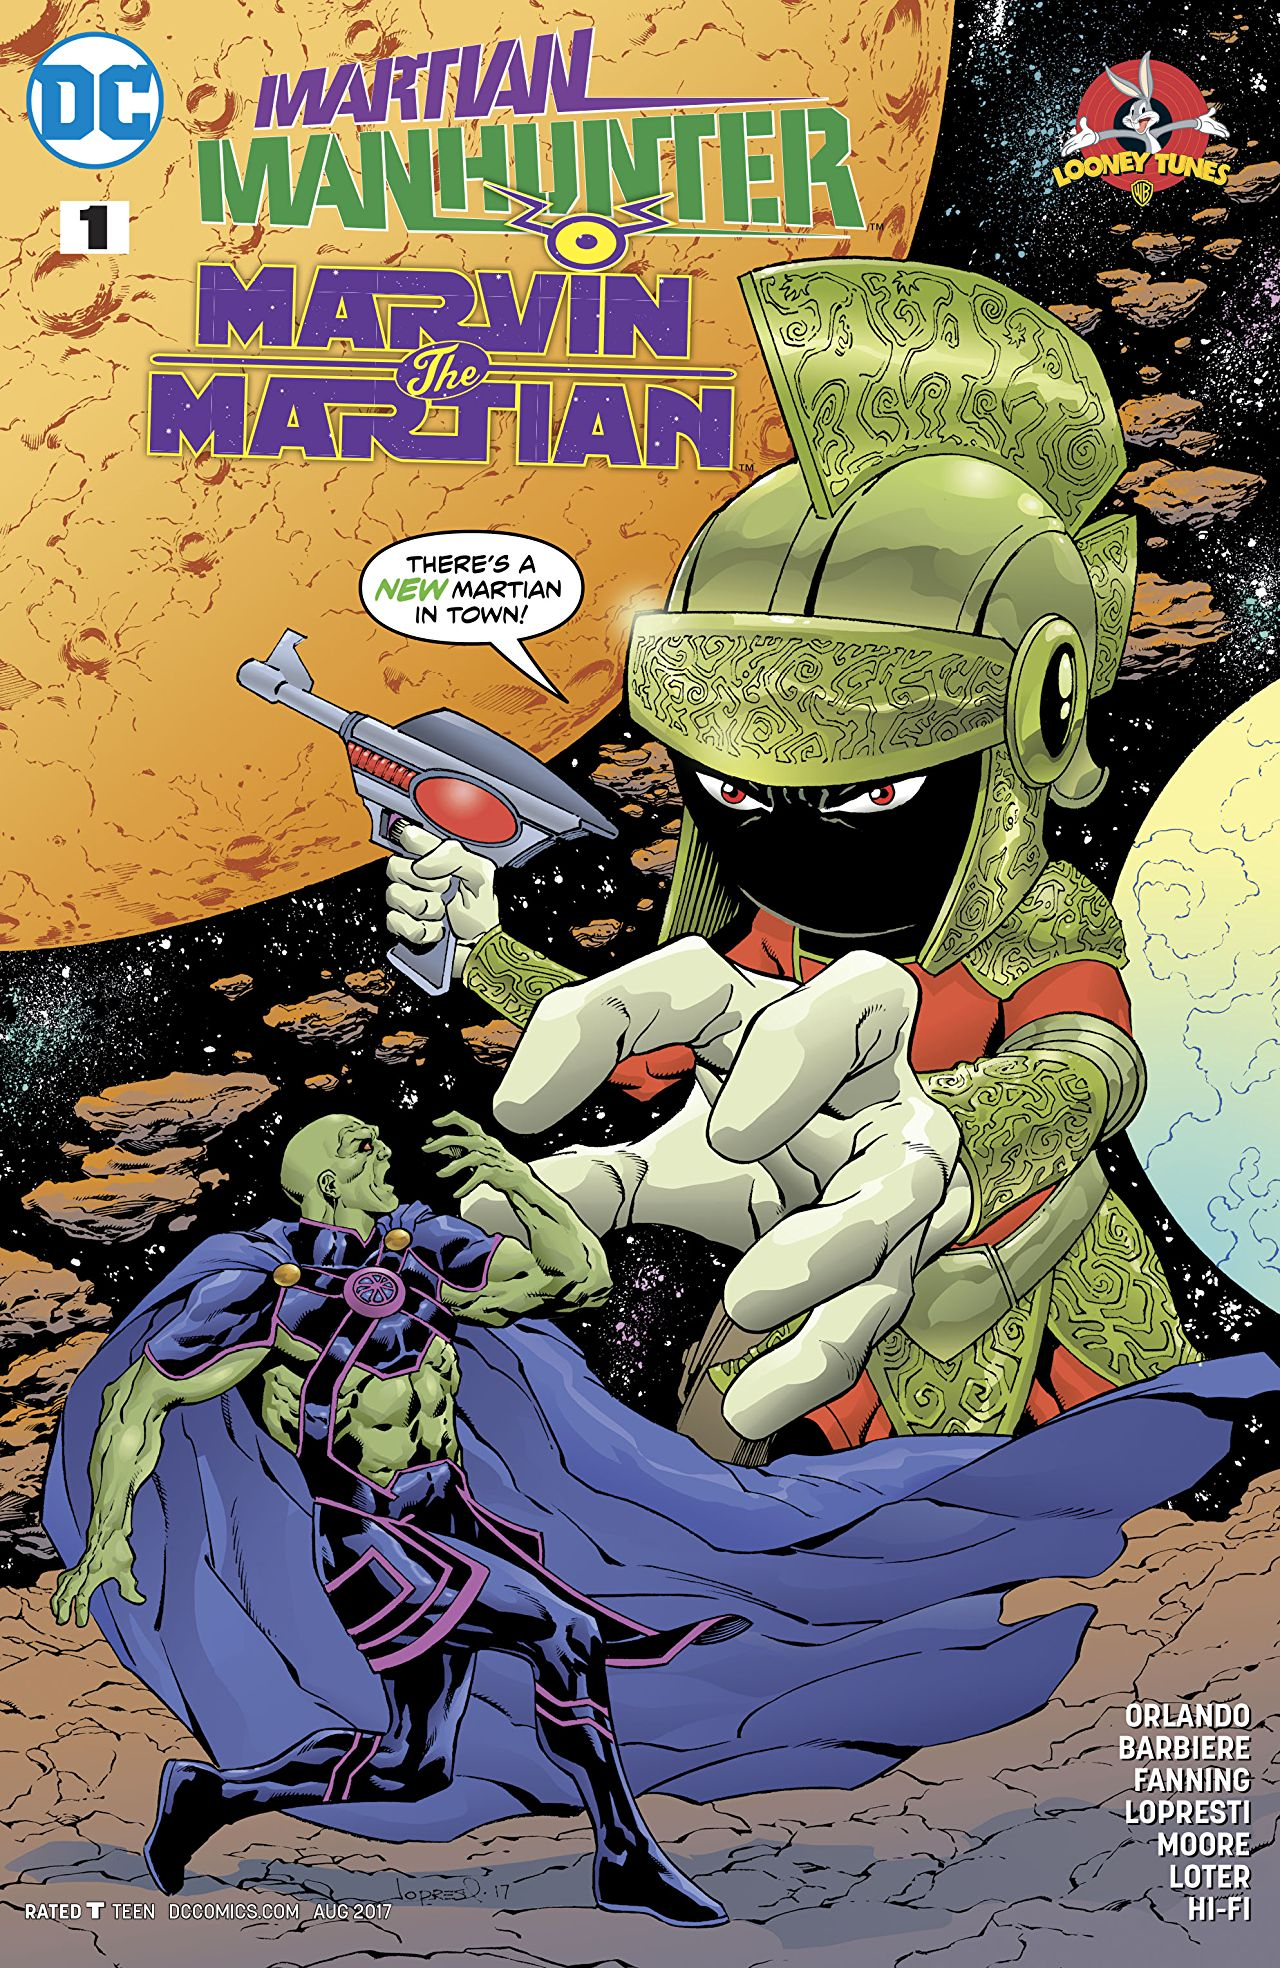 Martian Manhunter/Marvin the Martian Special Vol 1 1